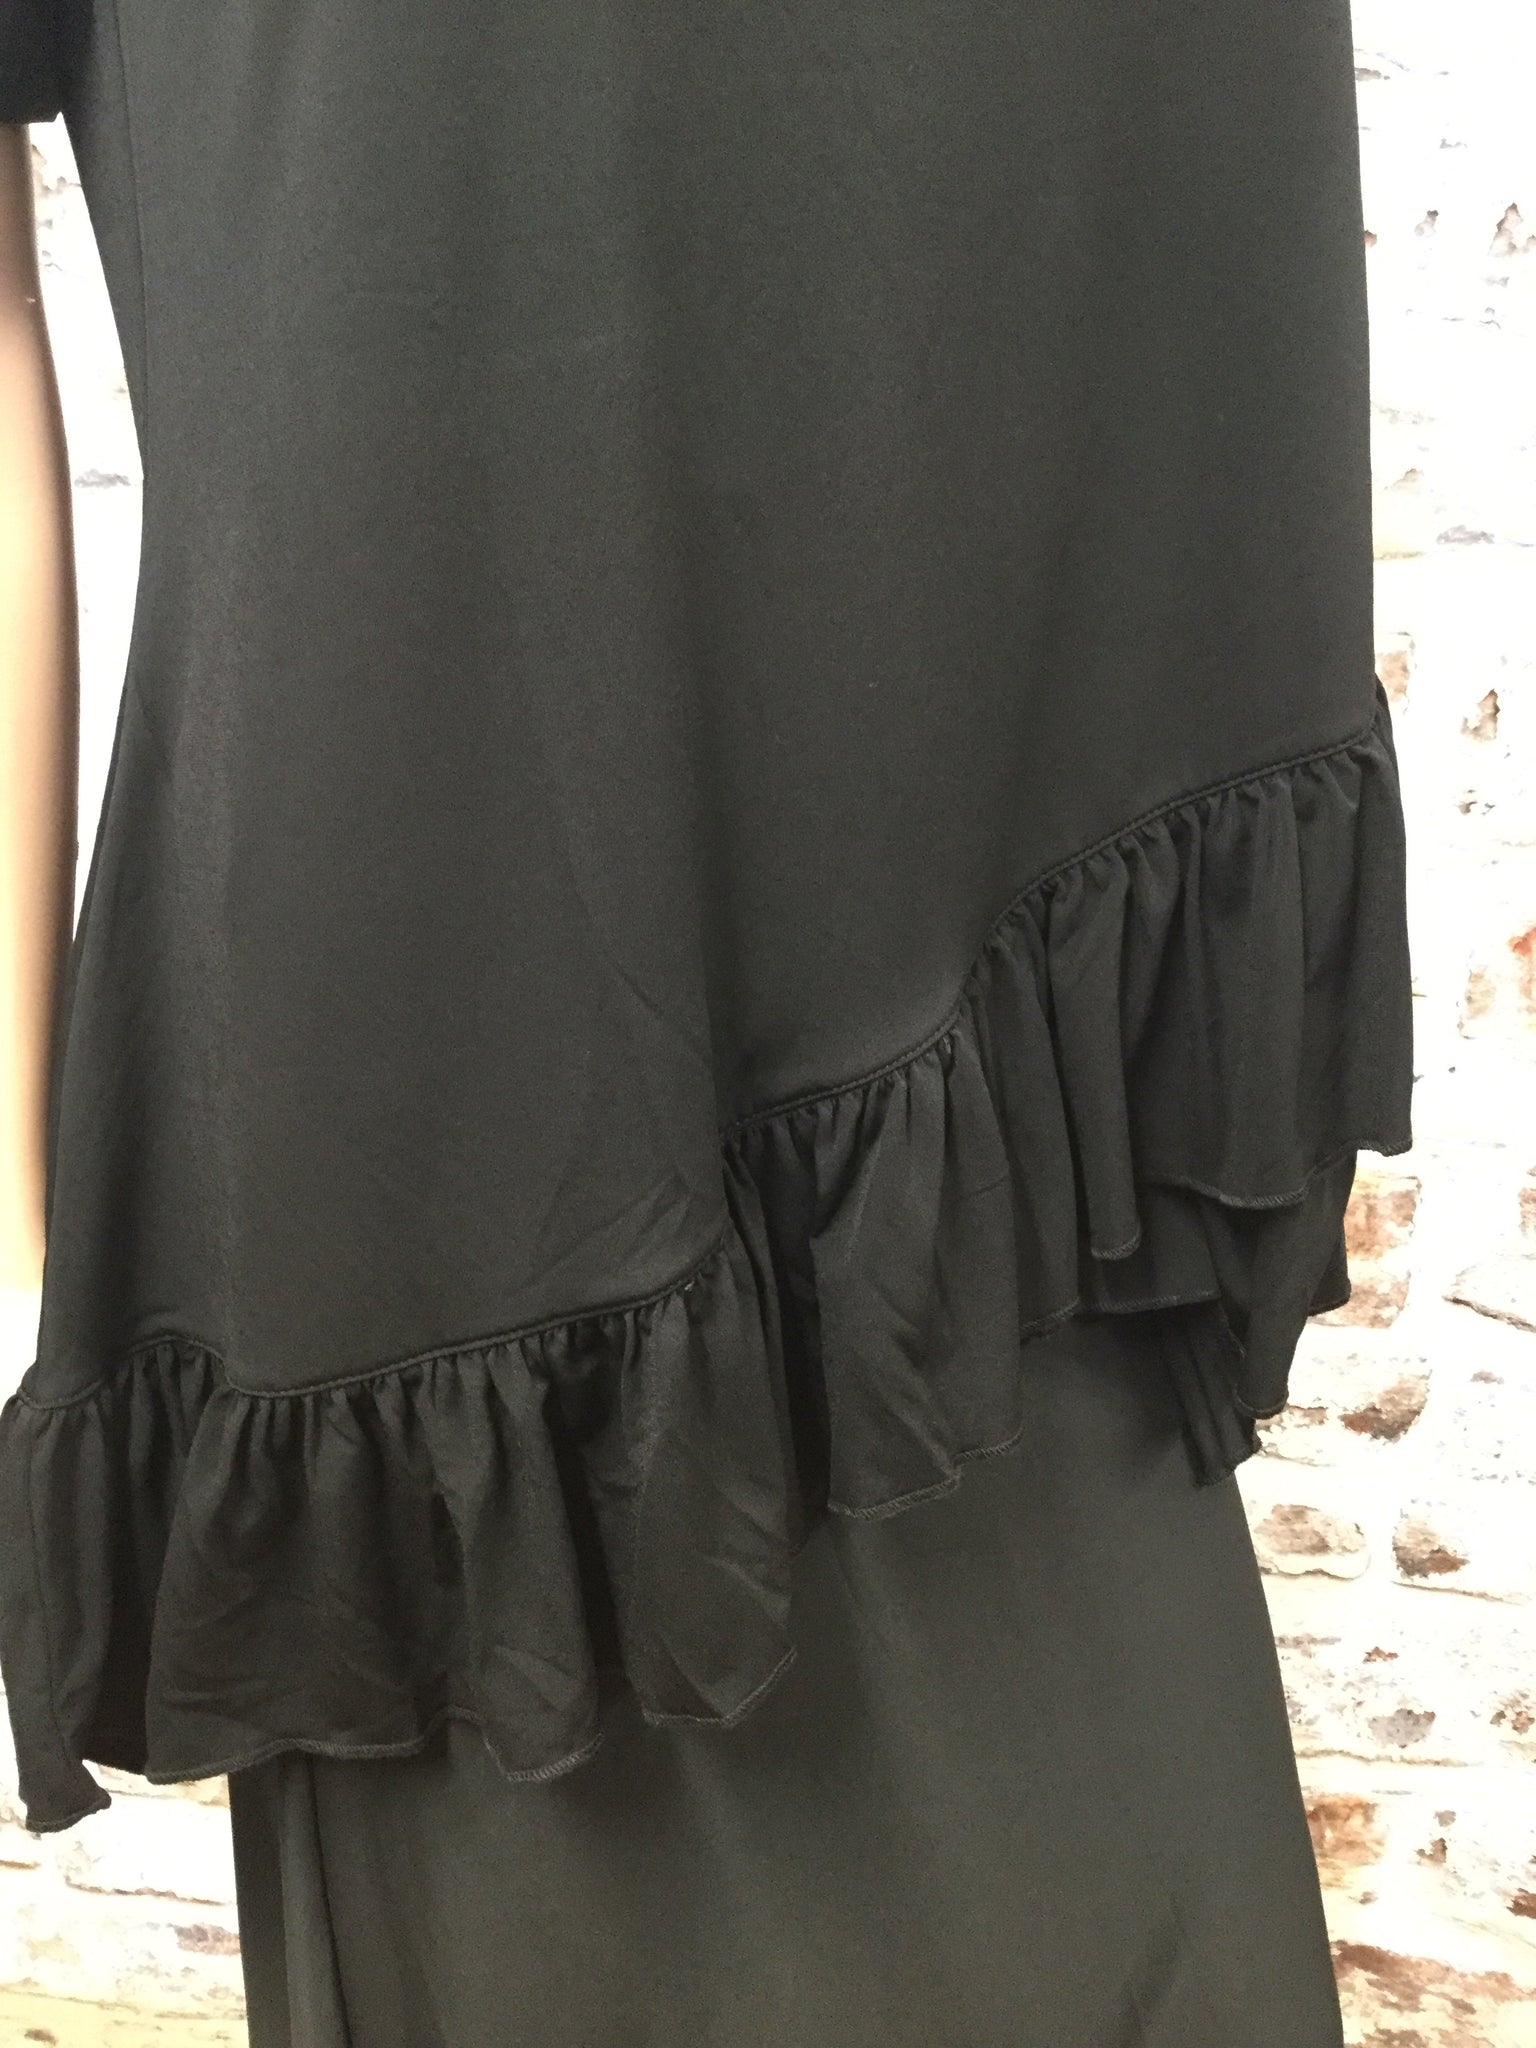 Plus Size Black Tunic with Overlap Ruffled Bottom